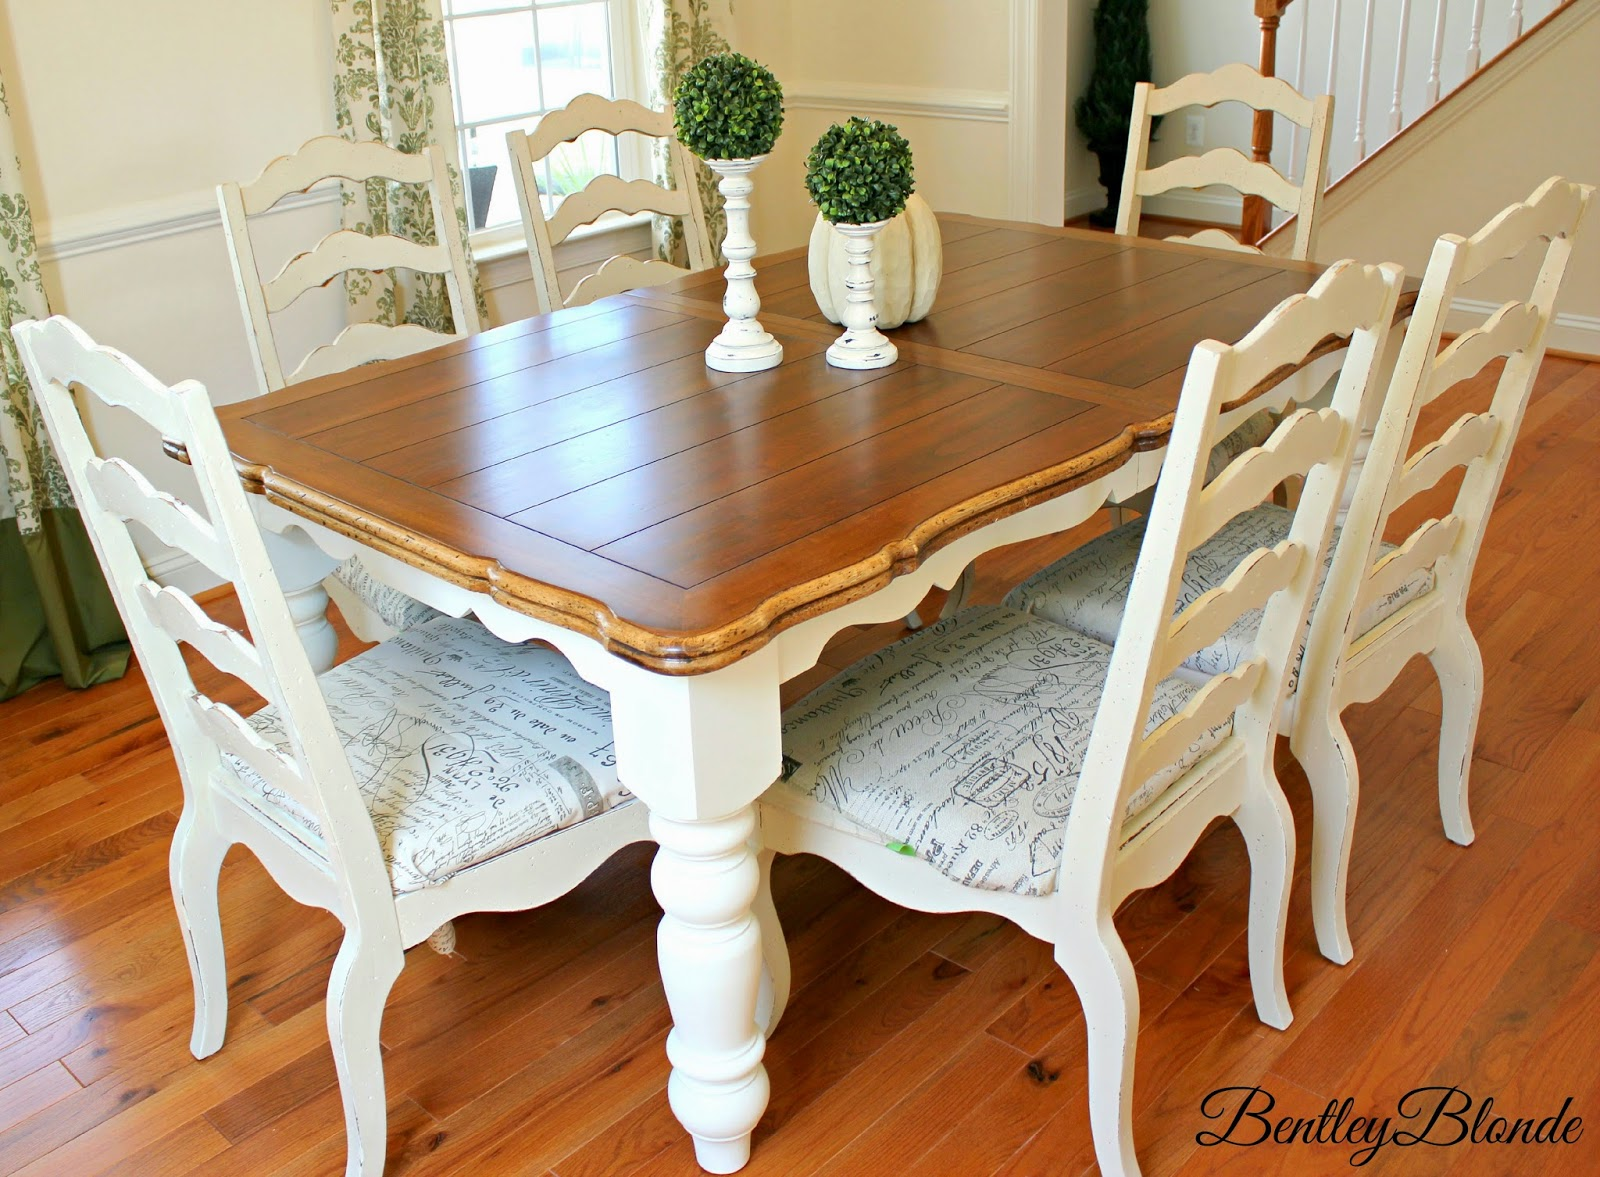 bentleyblonde diy farmhouse table dining set makeover with annie sloan chalk paint. Black Bedroom Furniture Sets. Home Design Ideas